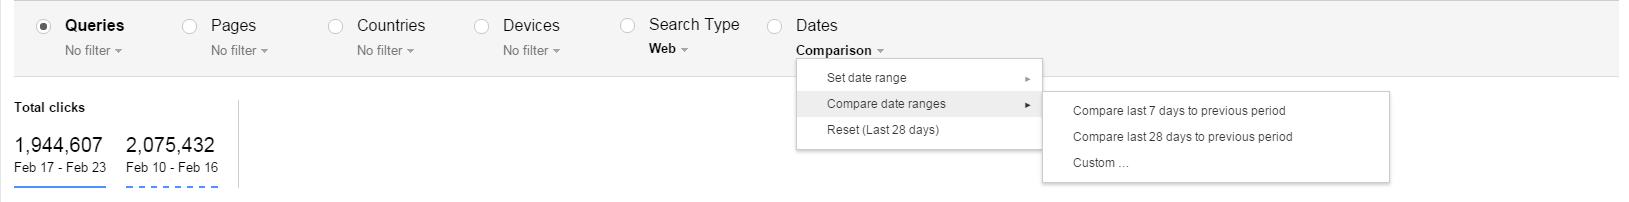 google-webmaster-tools-compare-dates